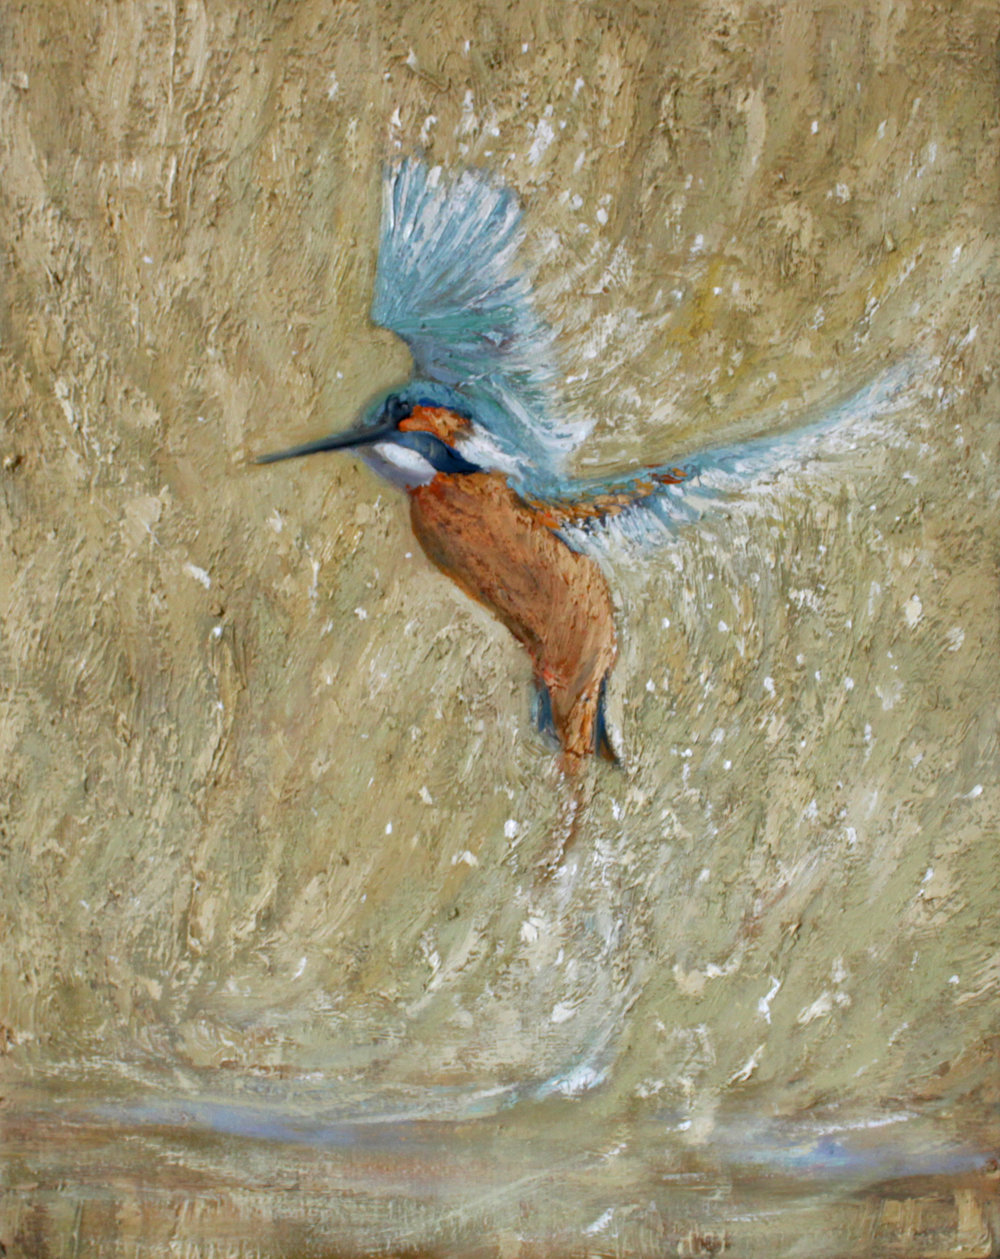 GUIDO SALIMBENI, Kingfisher With Spread Wings